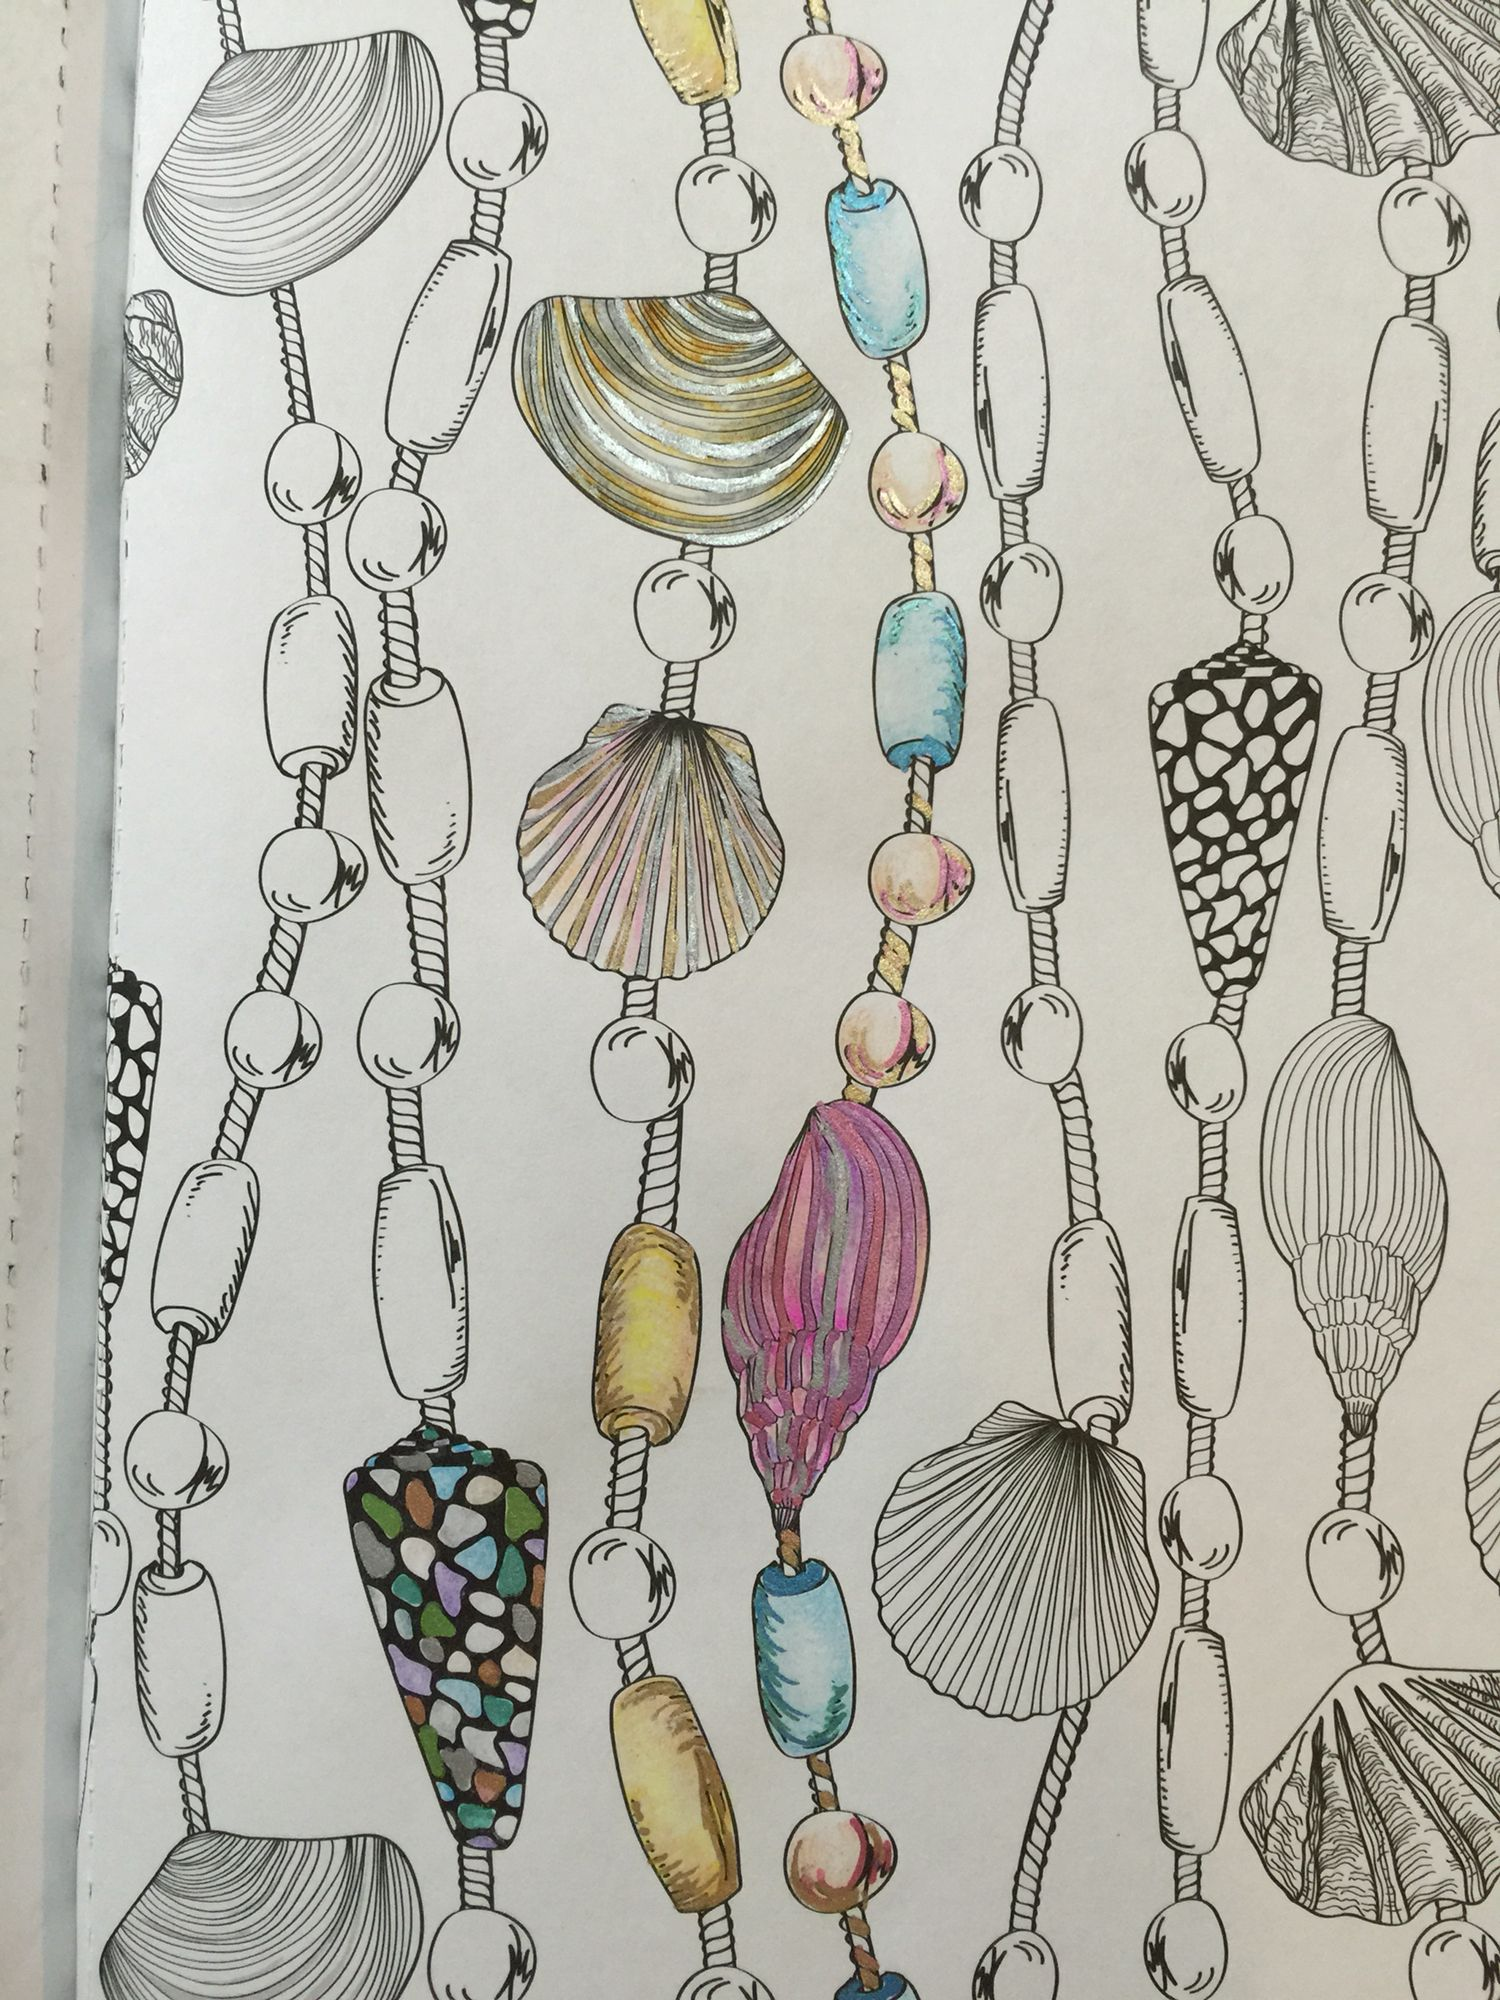 Coloring With Gel Pens Watercolor Pencils Colored